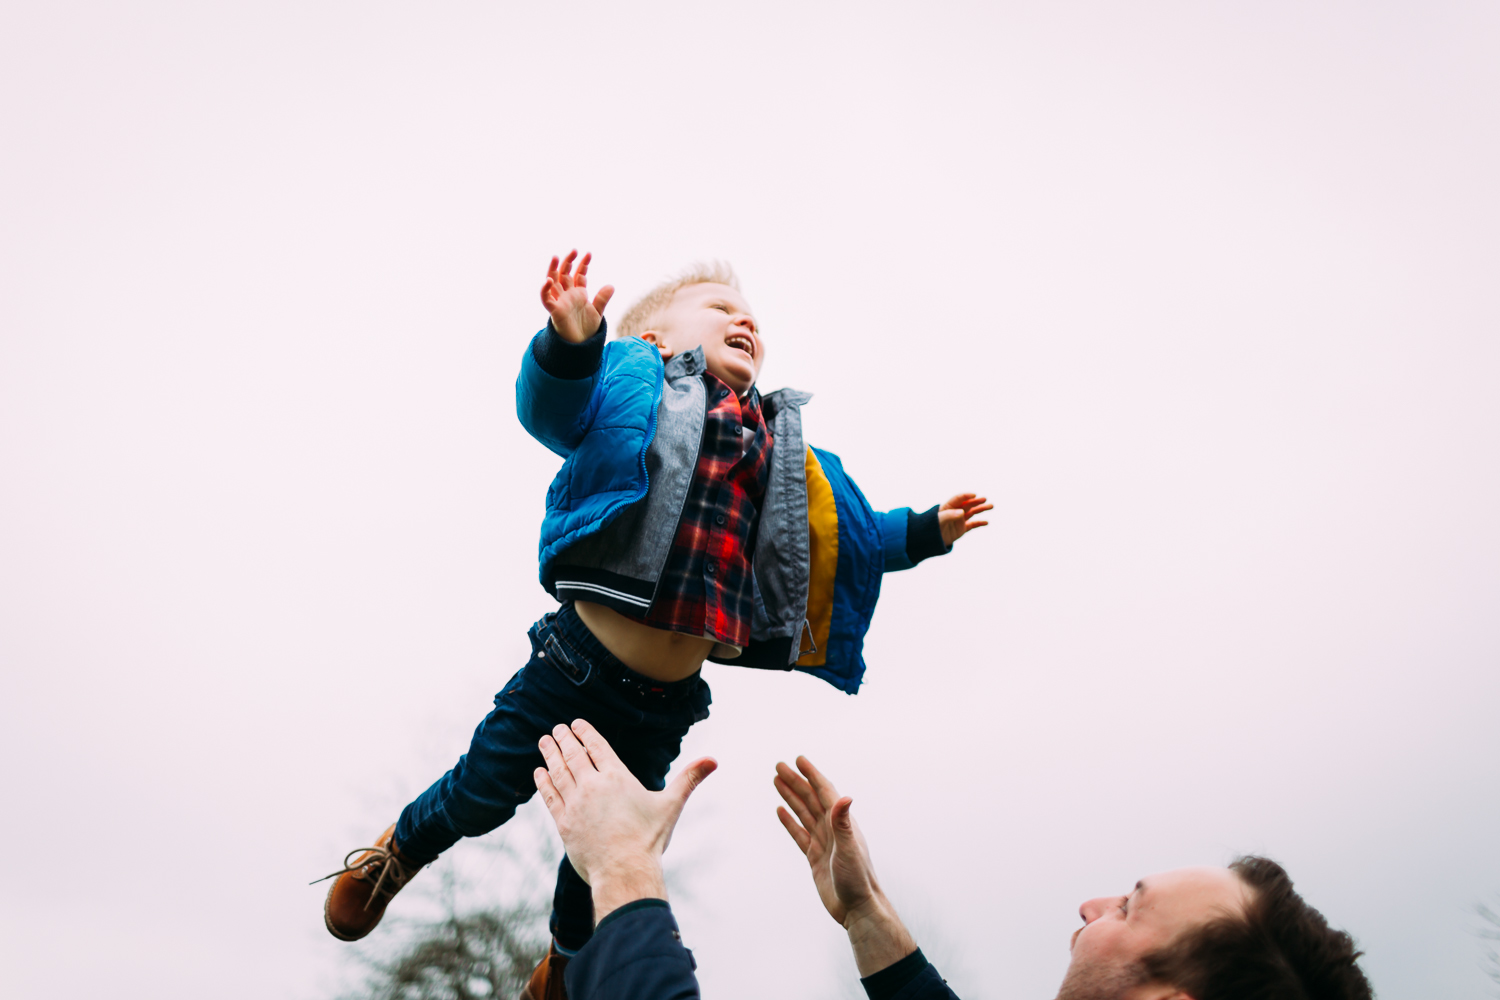 Father happily flinging his child in air and son laughing happily